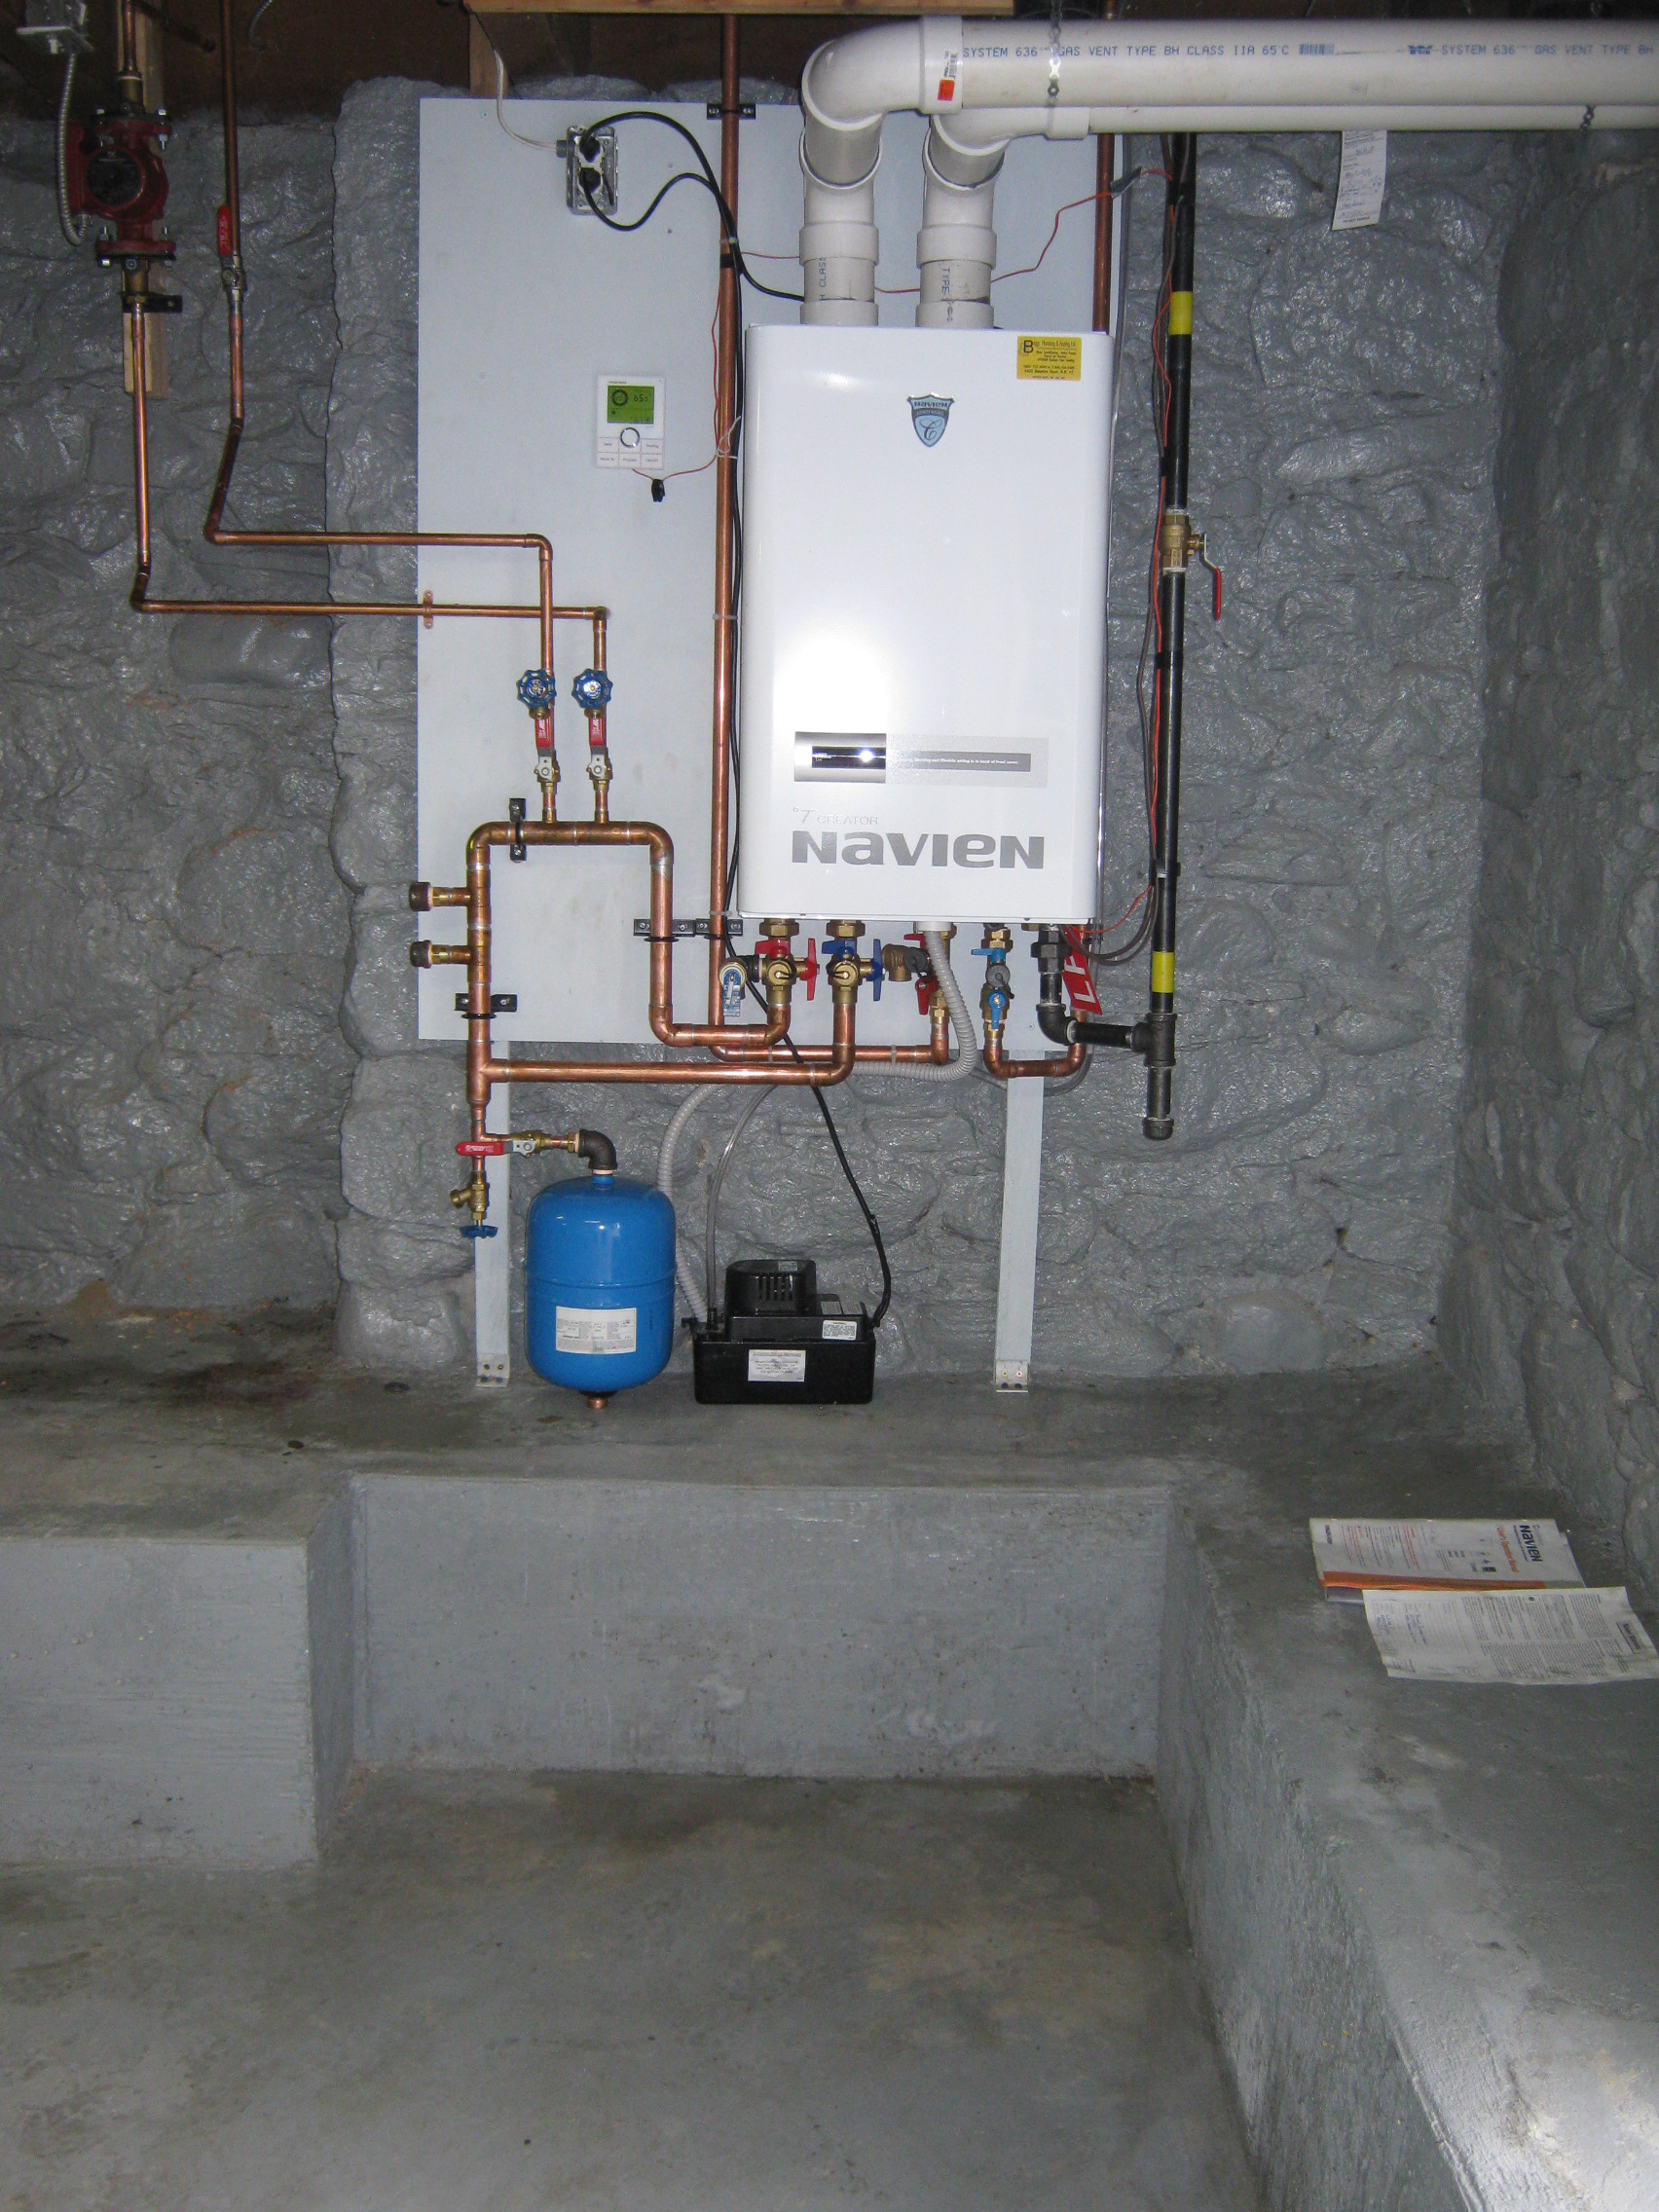 hight resolution of navien combi boiler condensing boiler service manual